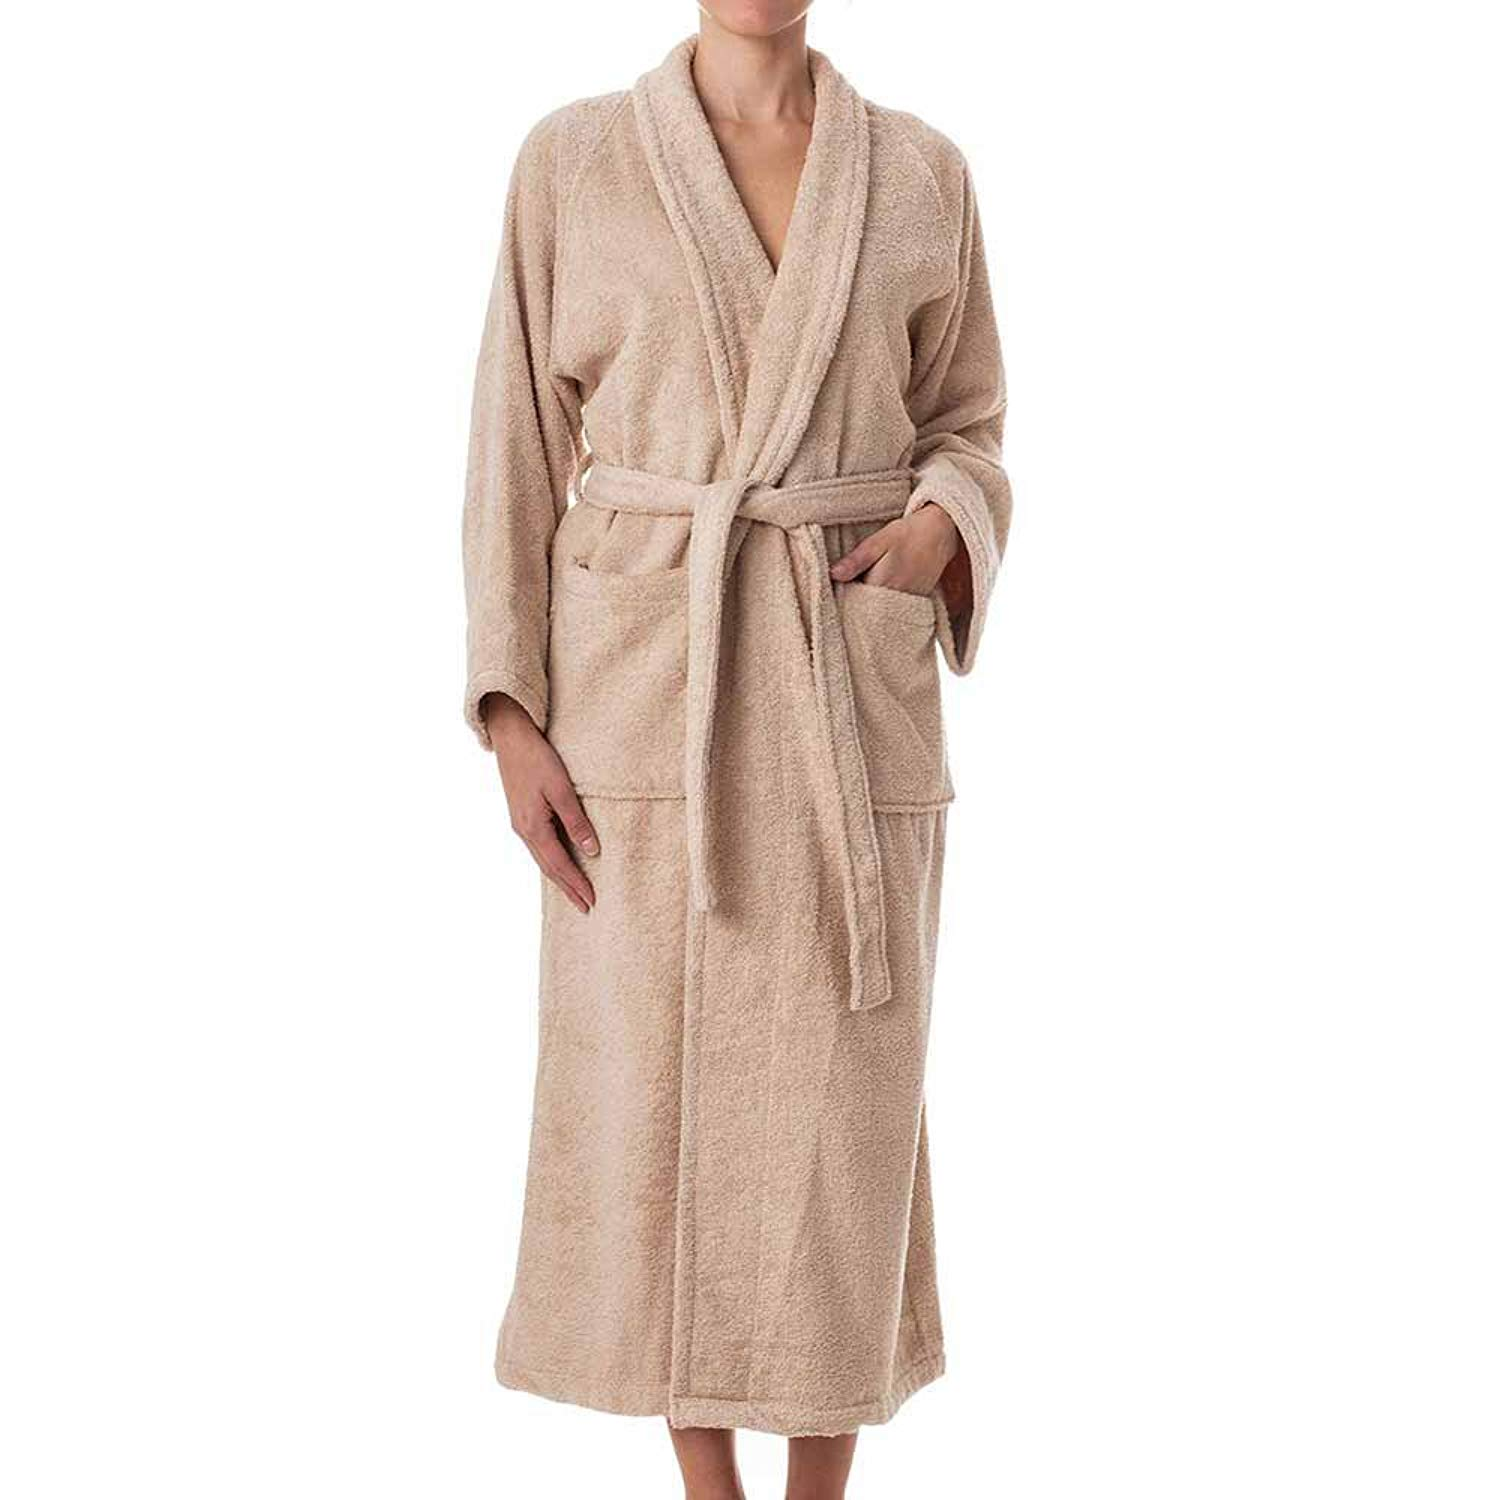 3b12fab0bb Get Quotations · eLuxurySupply Robes for Women - 100% Long Staple Cotton  Hotel Spa Plush Robes -